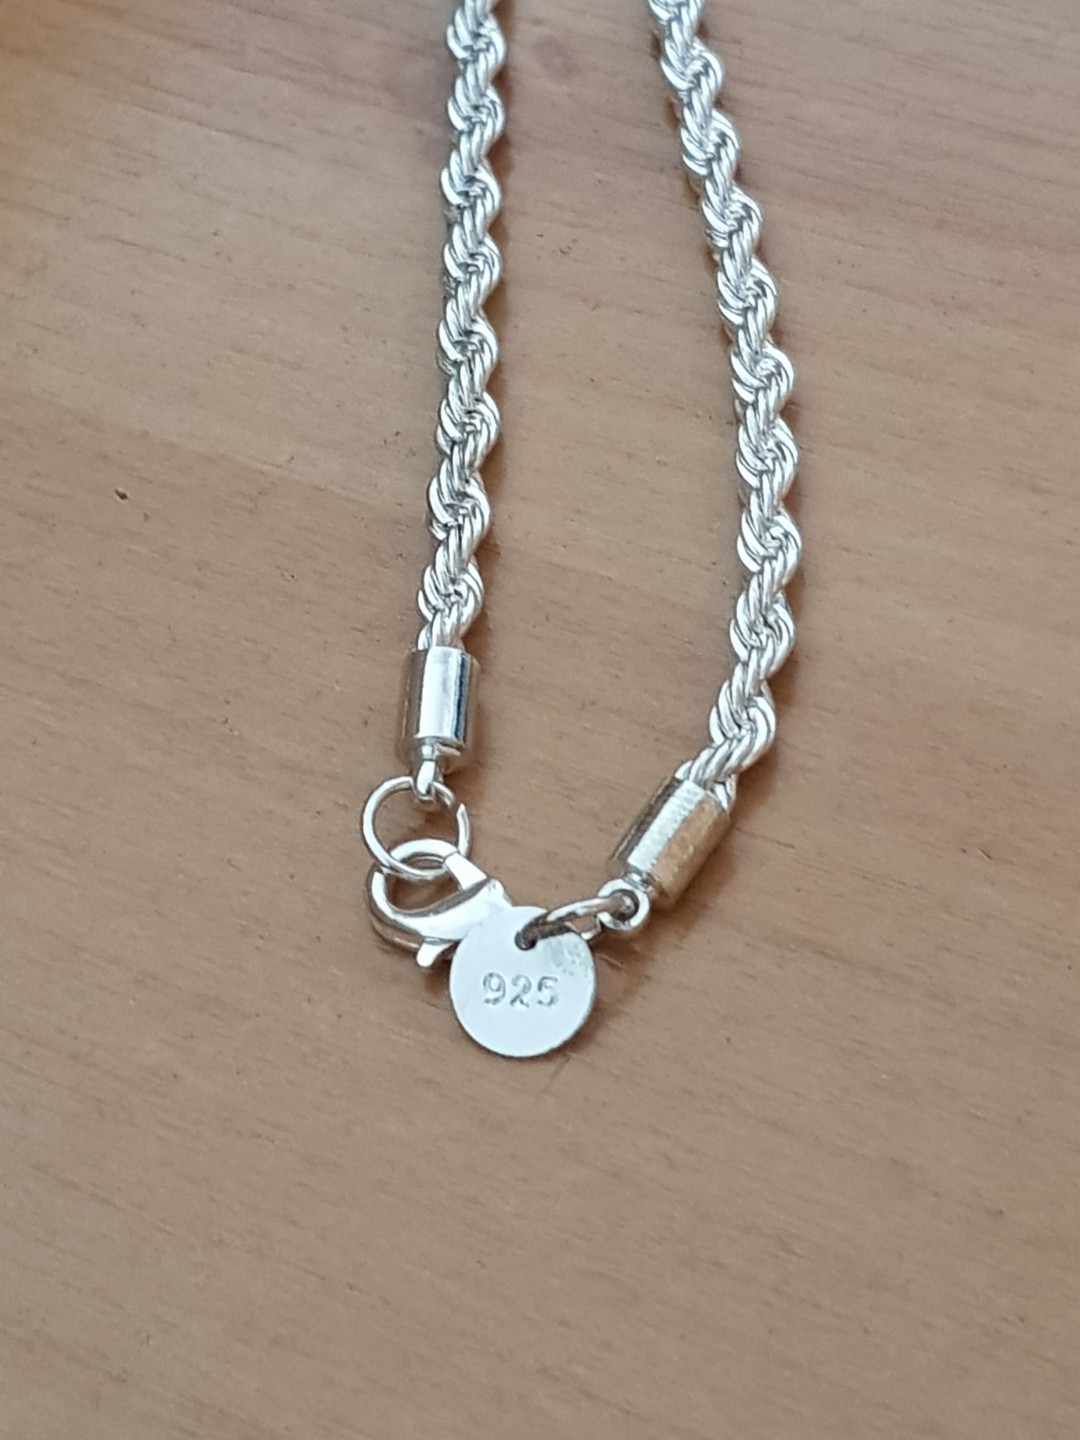 d3af197ff5bb9 Unisex 925 Sterling Silver Stamped Twisted Rope Chaim, Women's ...